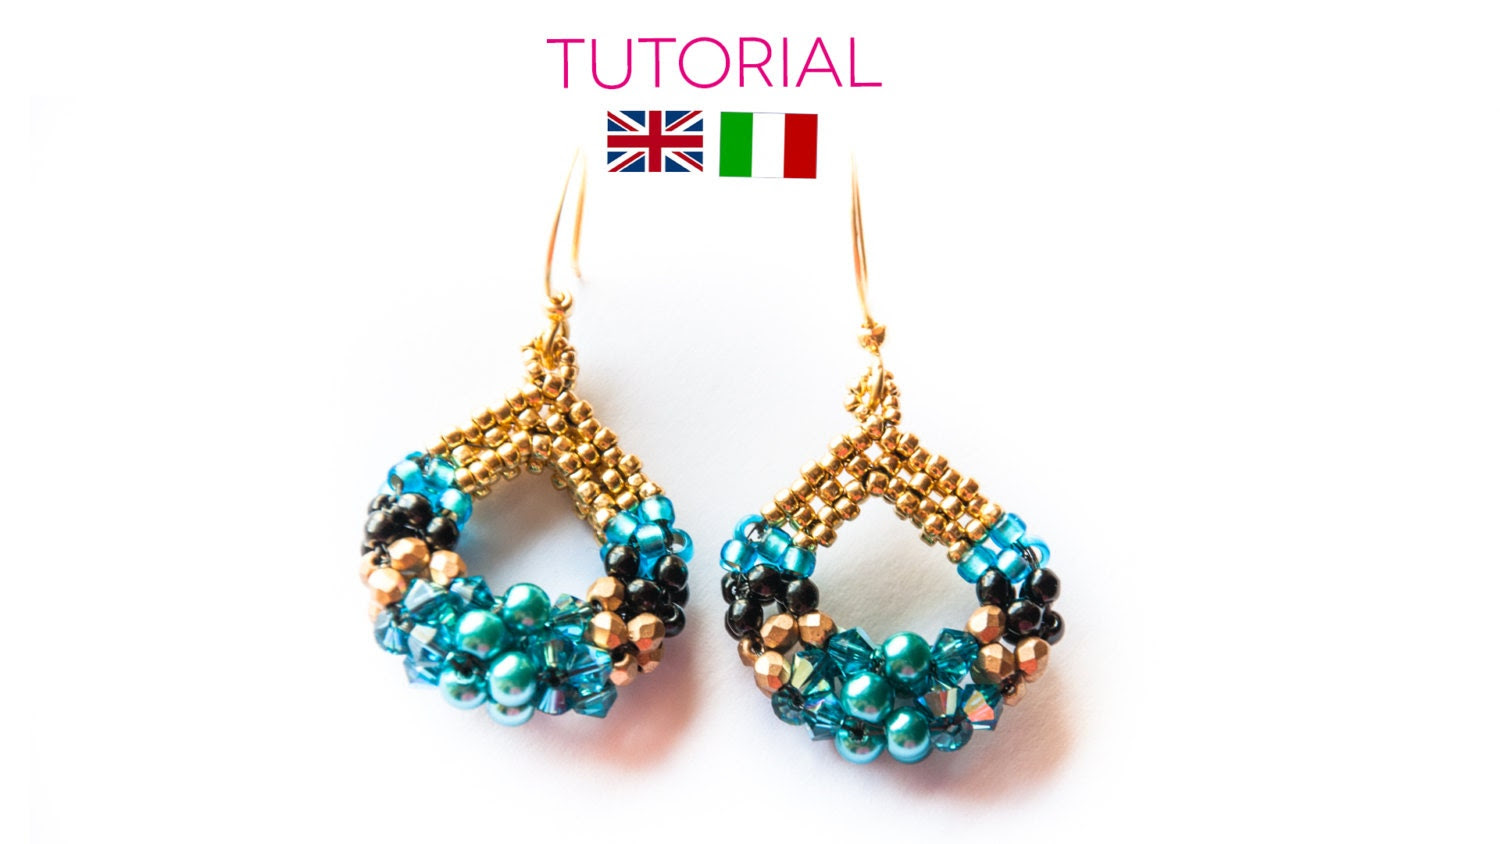 Blue drop Earrings Tutorial -  PDF PATTERN (ENGLISH or Italian available) - AgapeBijouxCreations